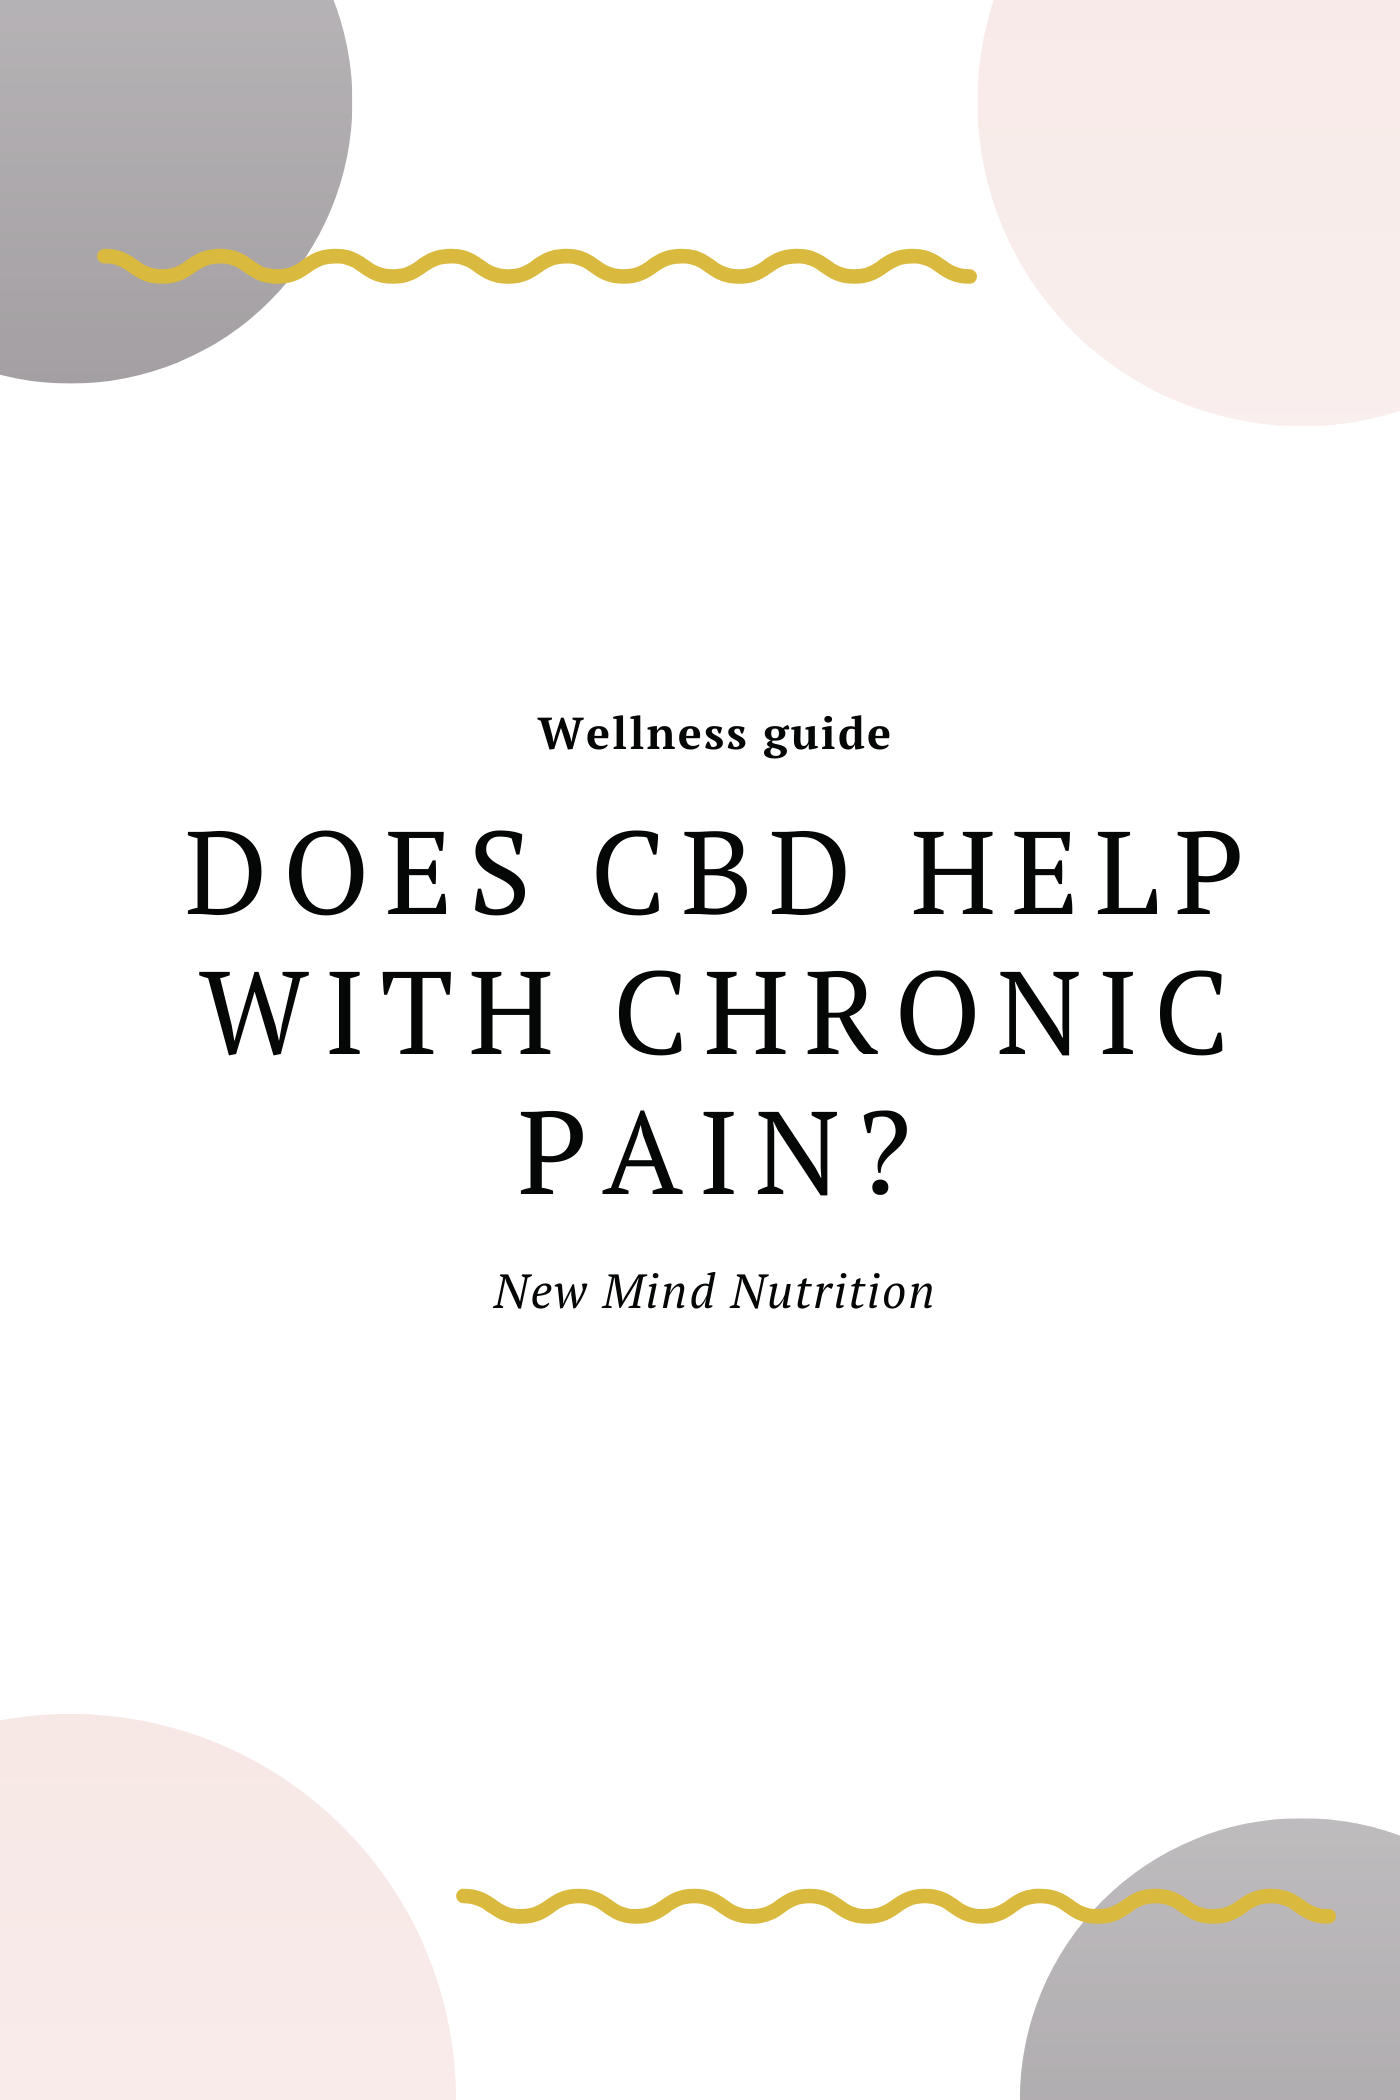 Does CBD help with chronic pain?